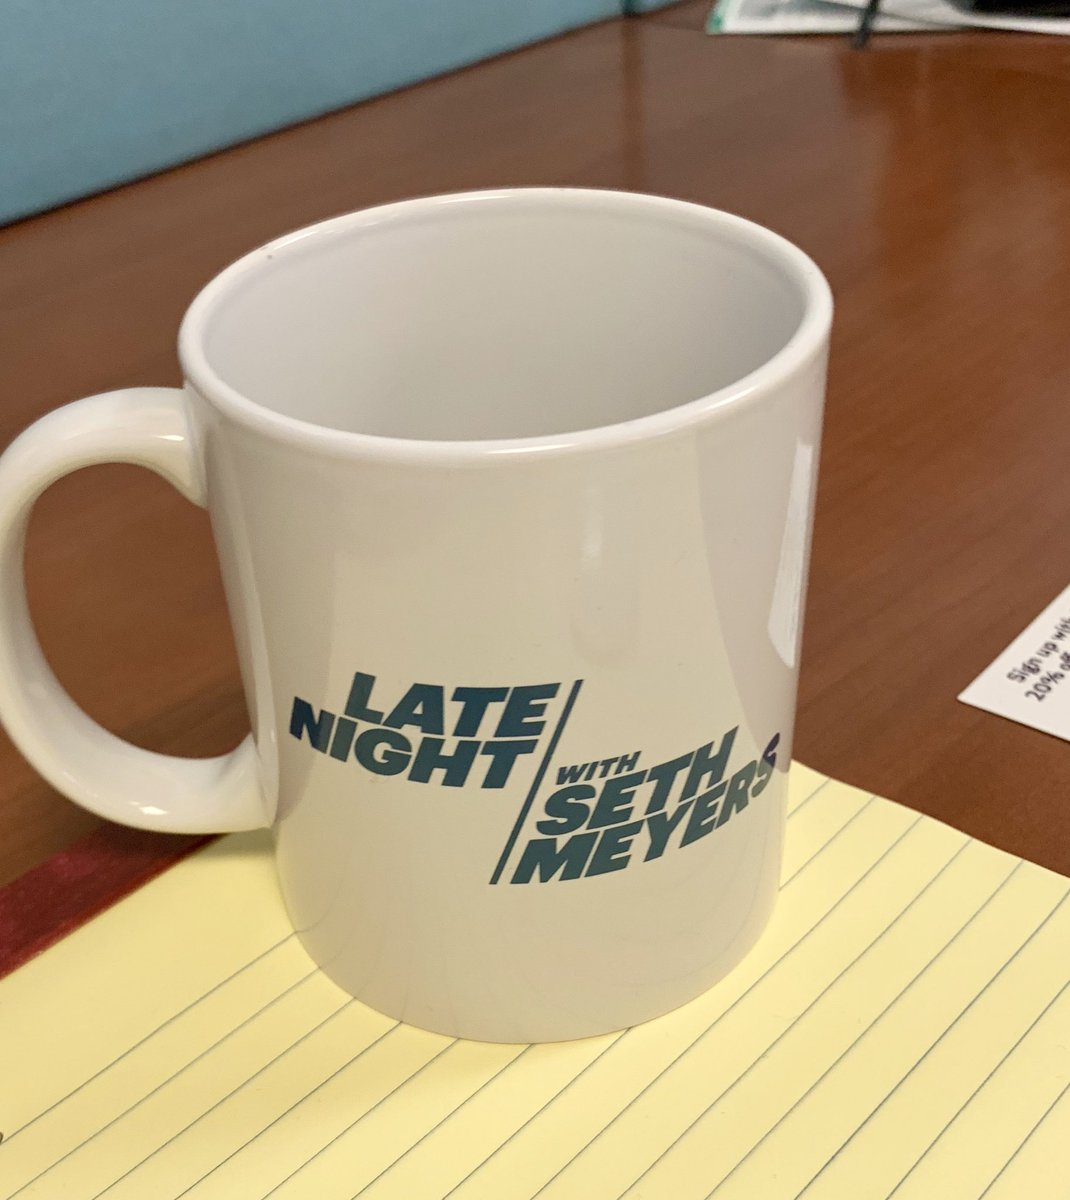 [whispers] hi hello me work as a writer at @LateNightSeth now!!!!!!!! 💕💓 (here is a mug to prove it)